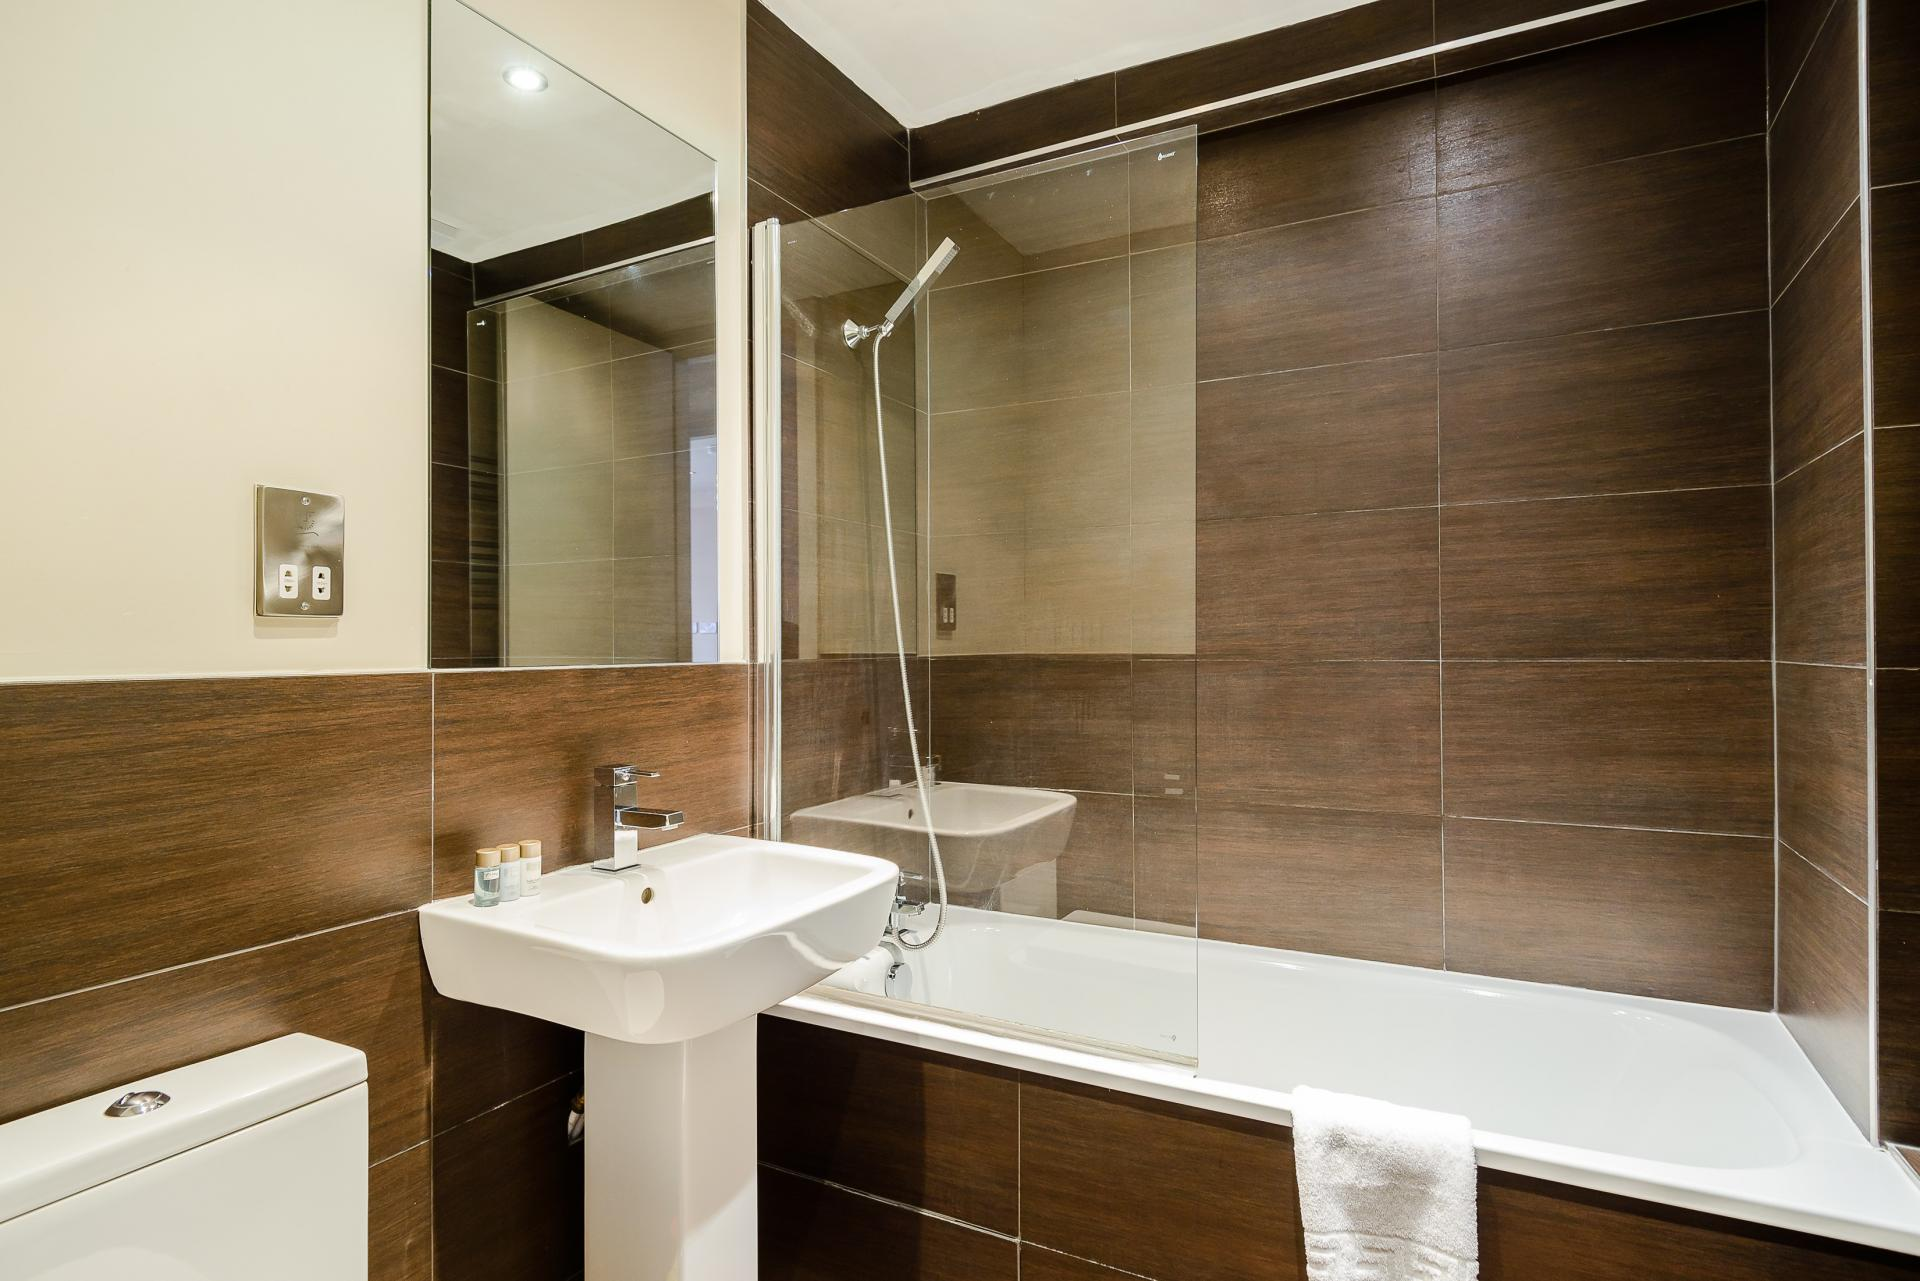 Bathroom at Flying Butler Holborn Apartments, Holborn, London - Citybase Apartments